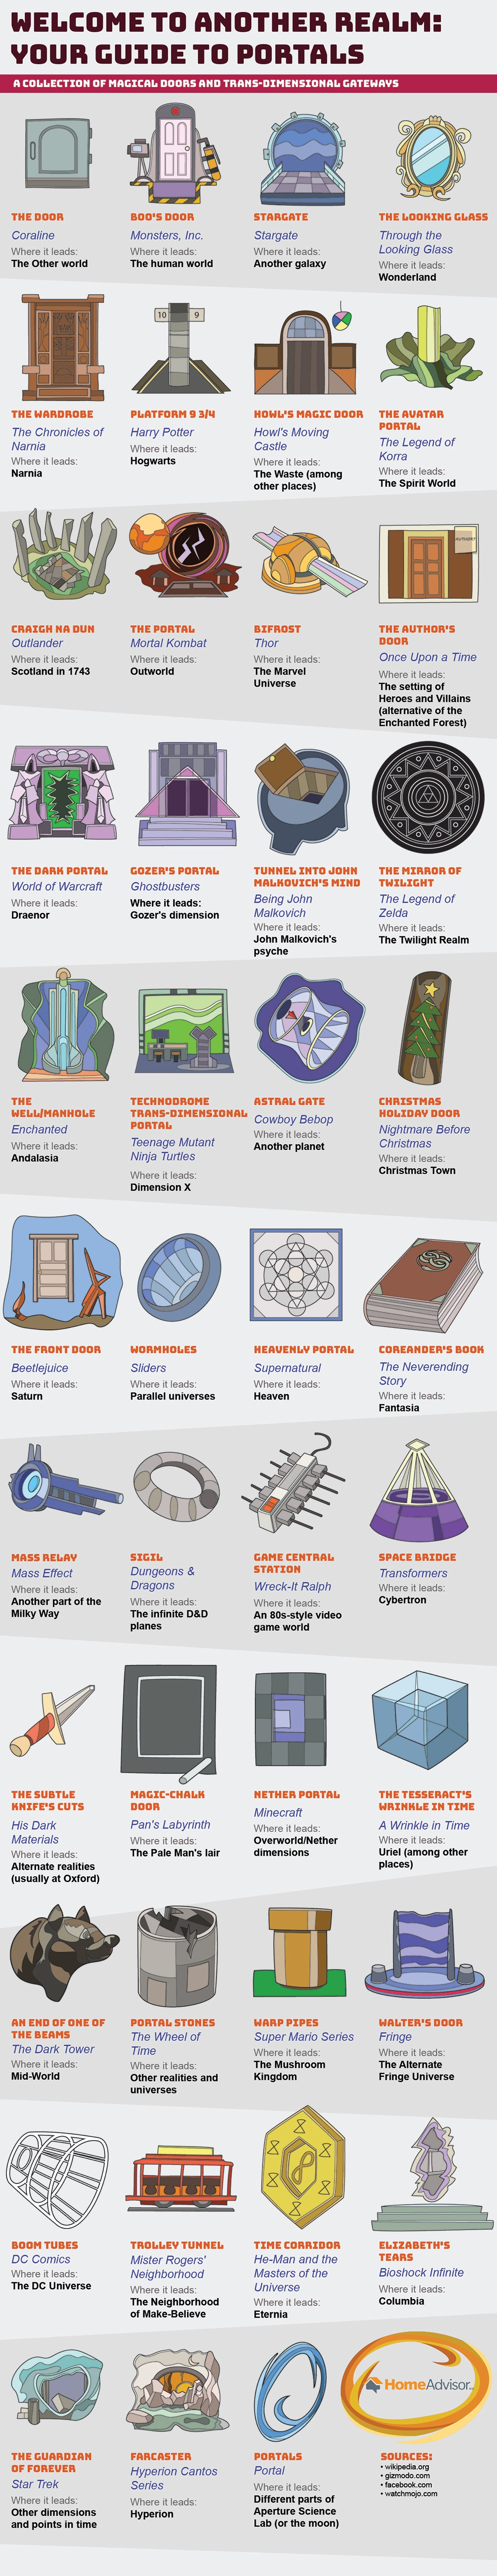 Welcome to Another Realm: Your Guide to Portals - HomeAdvisor.com - Infographic